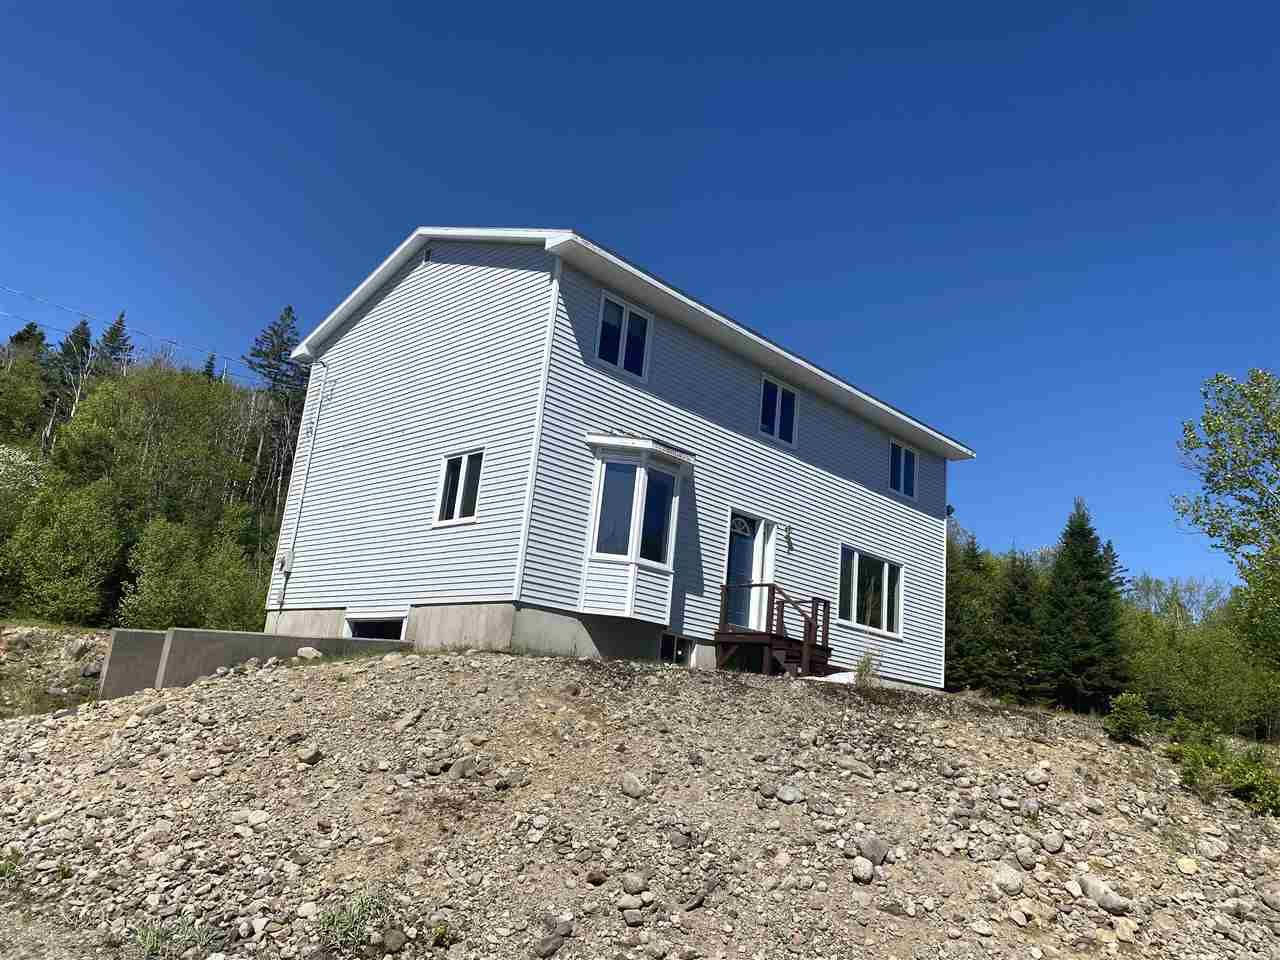 Main Photo: 795 West Side Indian Harbour Lake Road in Indian Harbour: 303-Guysborough County Residential for sale (Highland Region)  : MLS®# 202010257